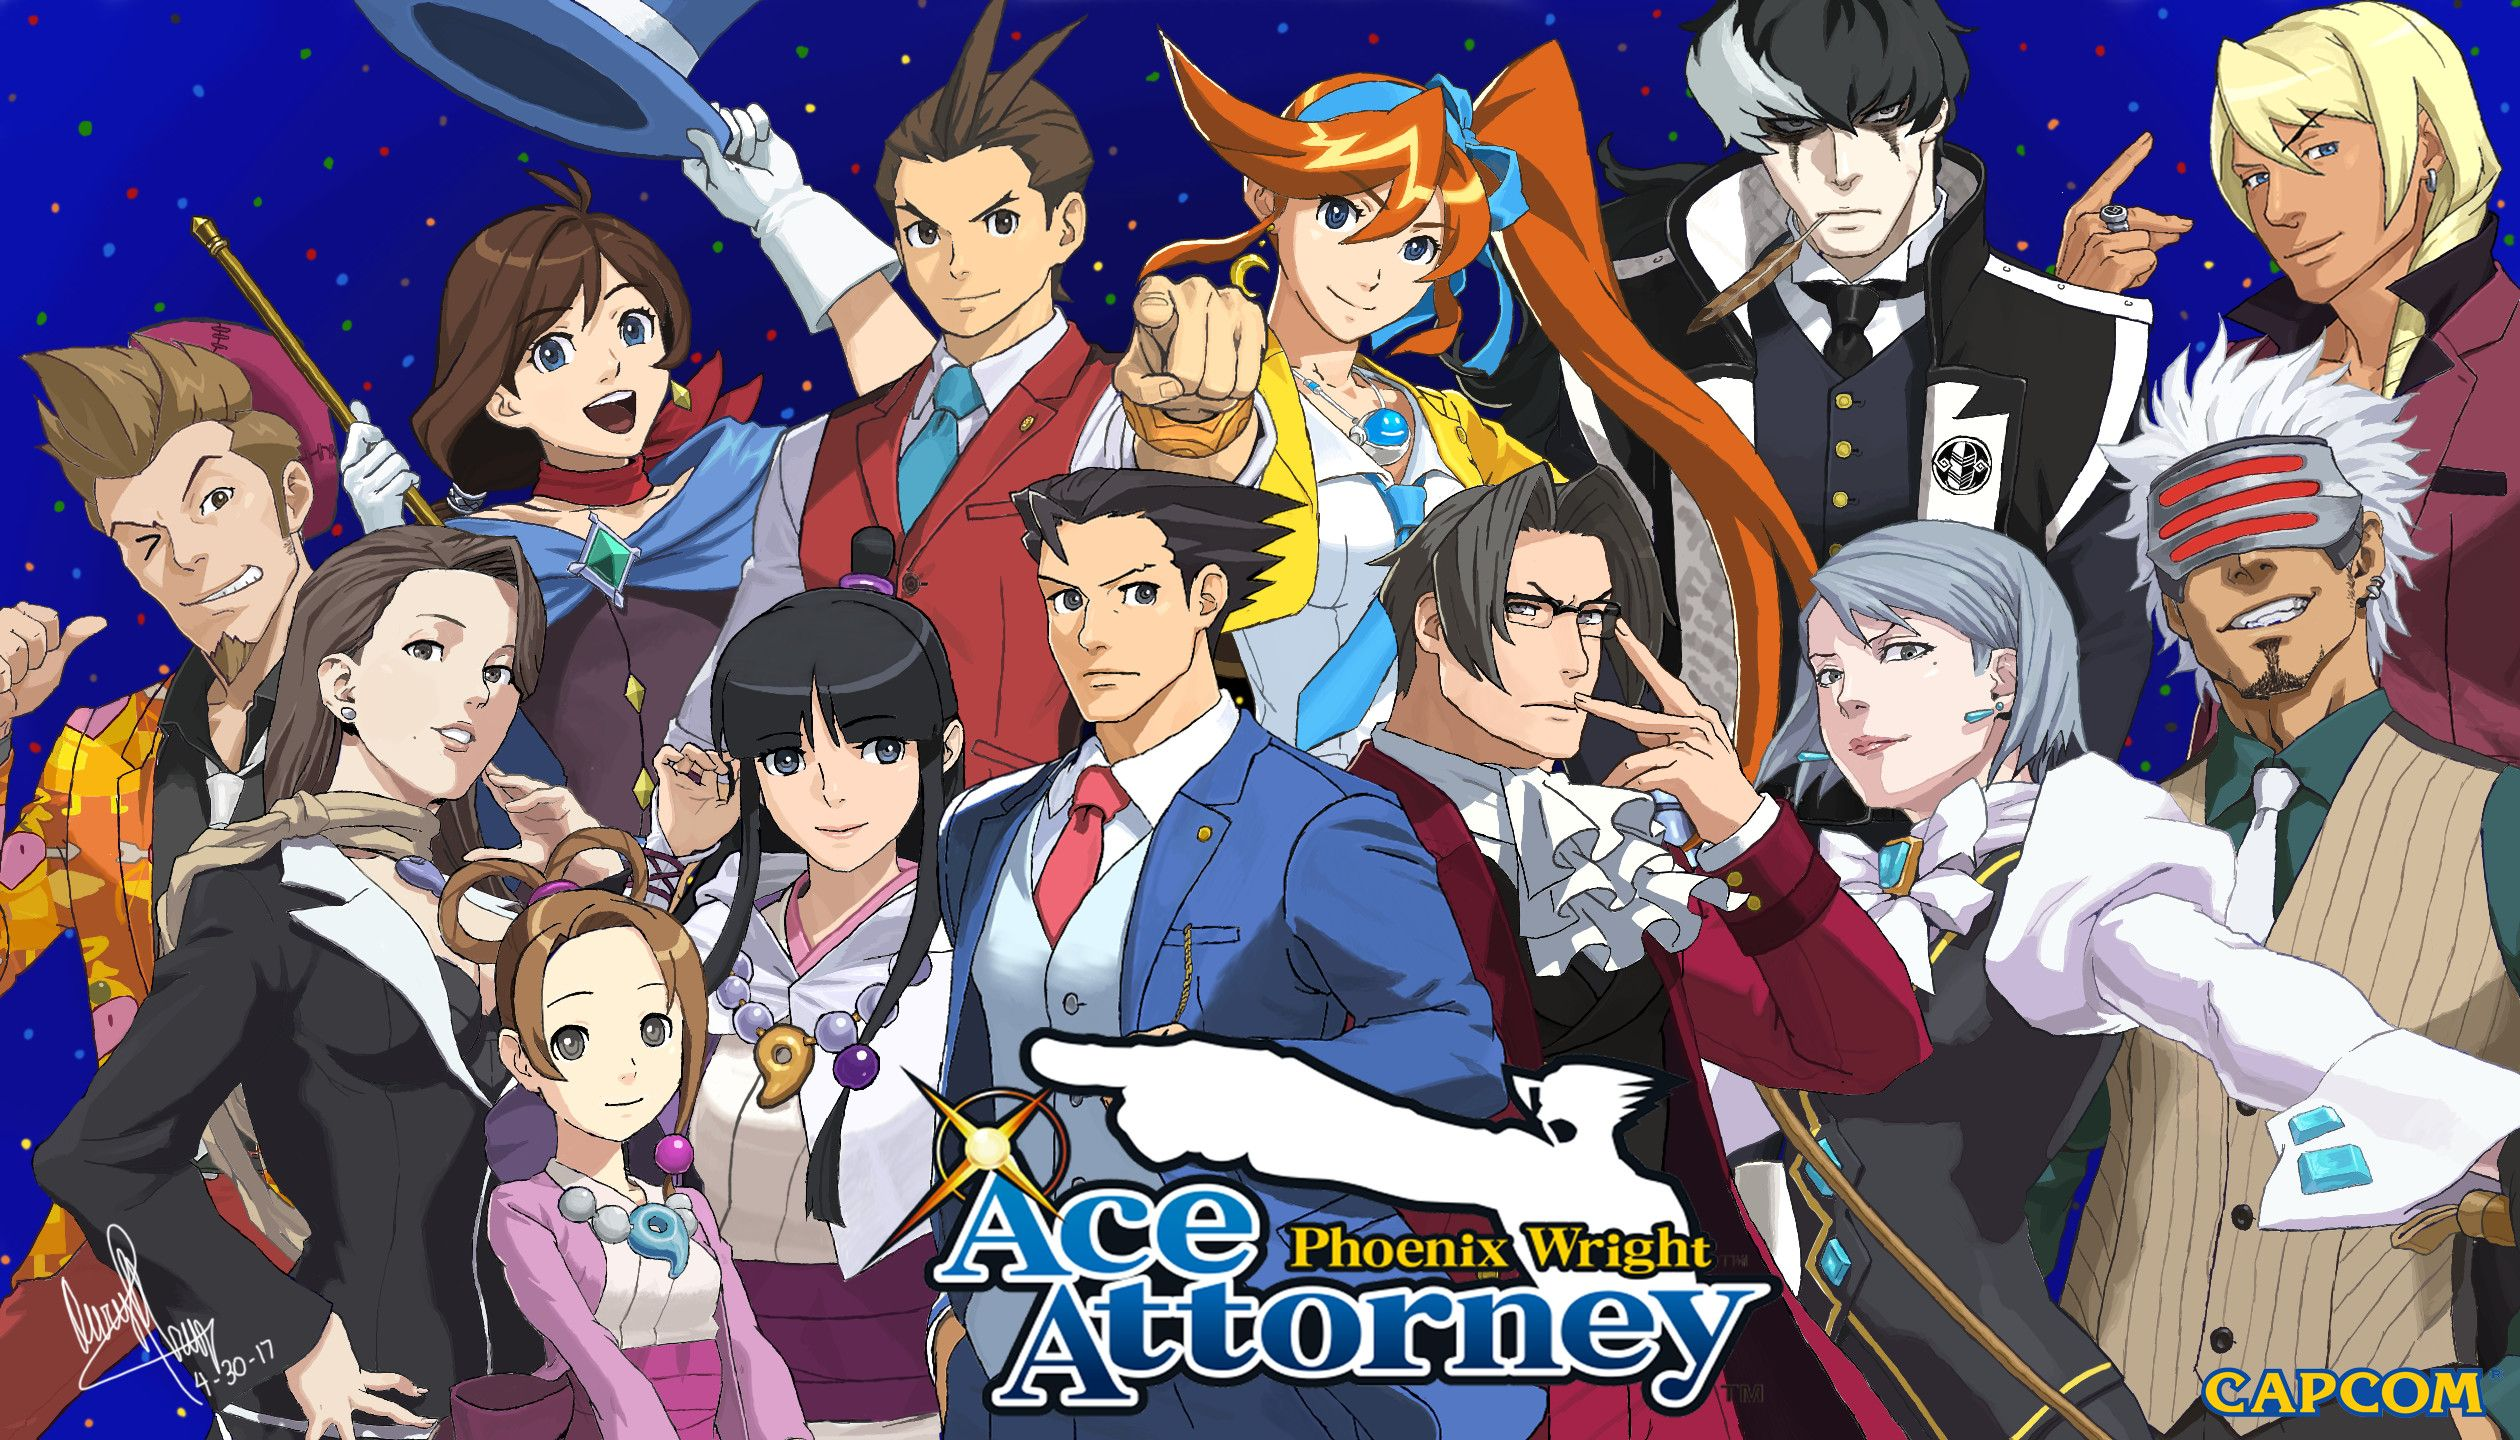 76 Ace Attorney Wallpapers On Wallpaperplay Character Wallpaper